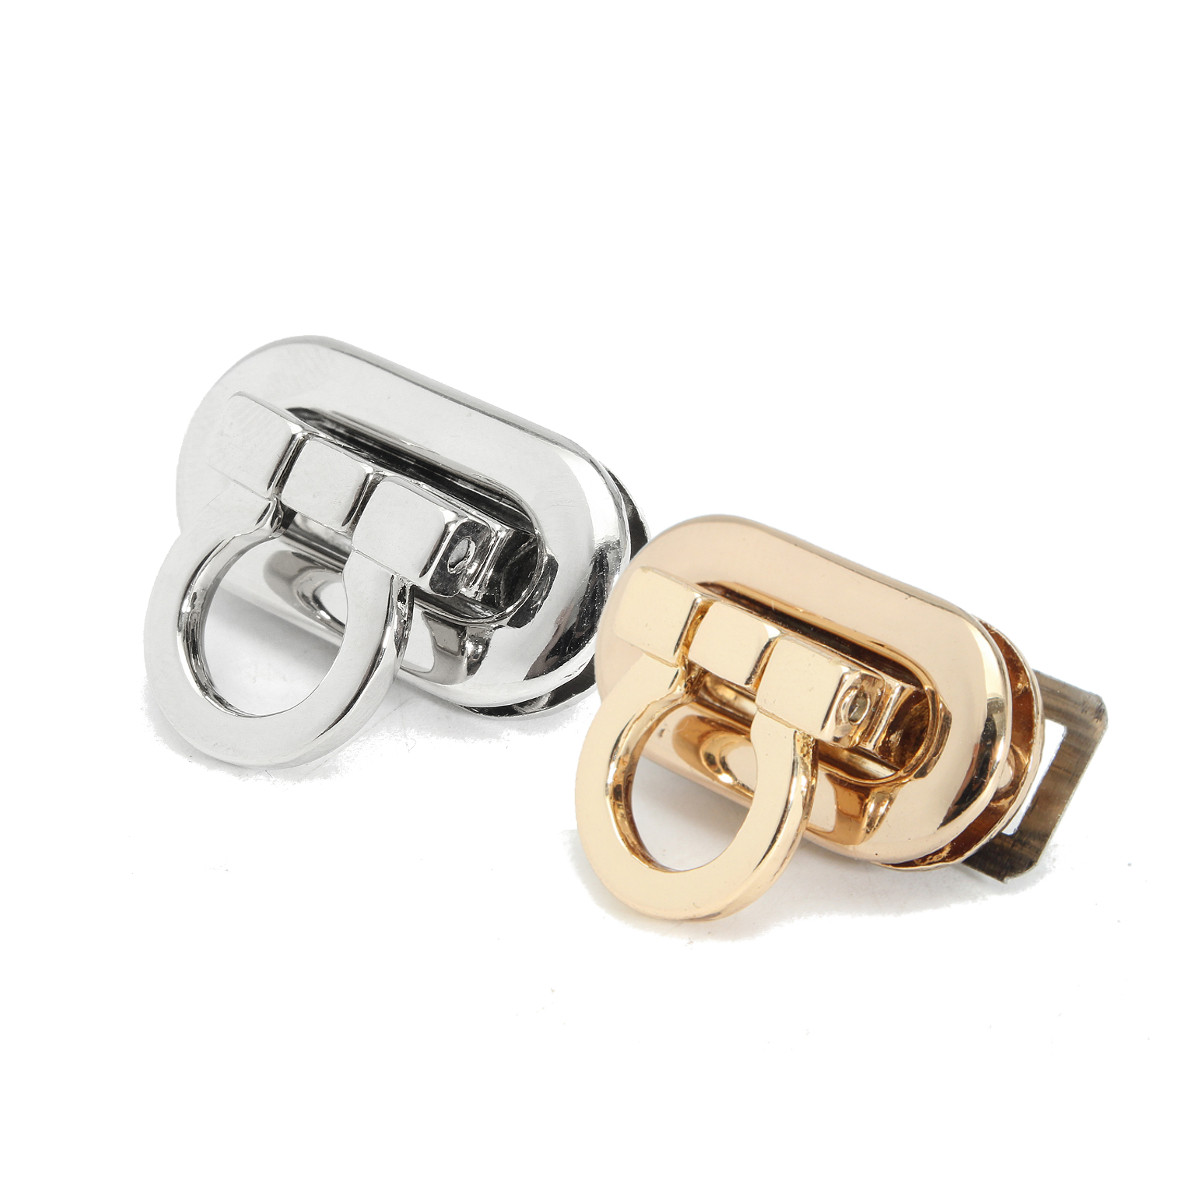 AEQUEEN 3pcs Alloy Buckle Twist Turn Lock Snap Clasps Closure DIY Purse Women Bag Accessory Part Handbag Bag Button Silver Gold